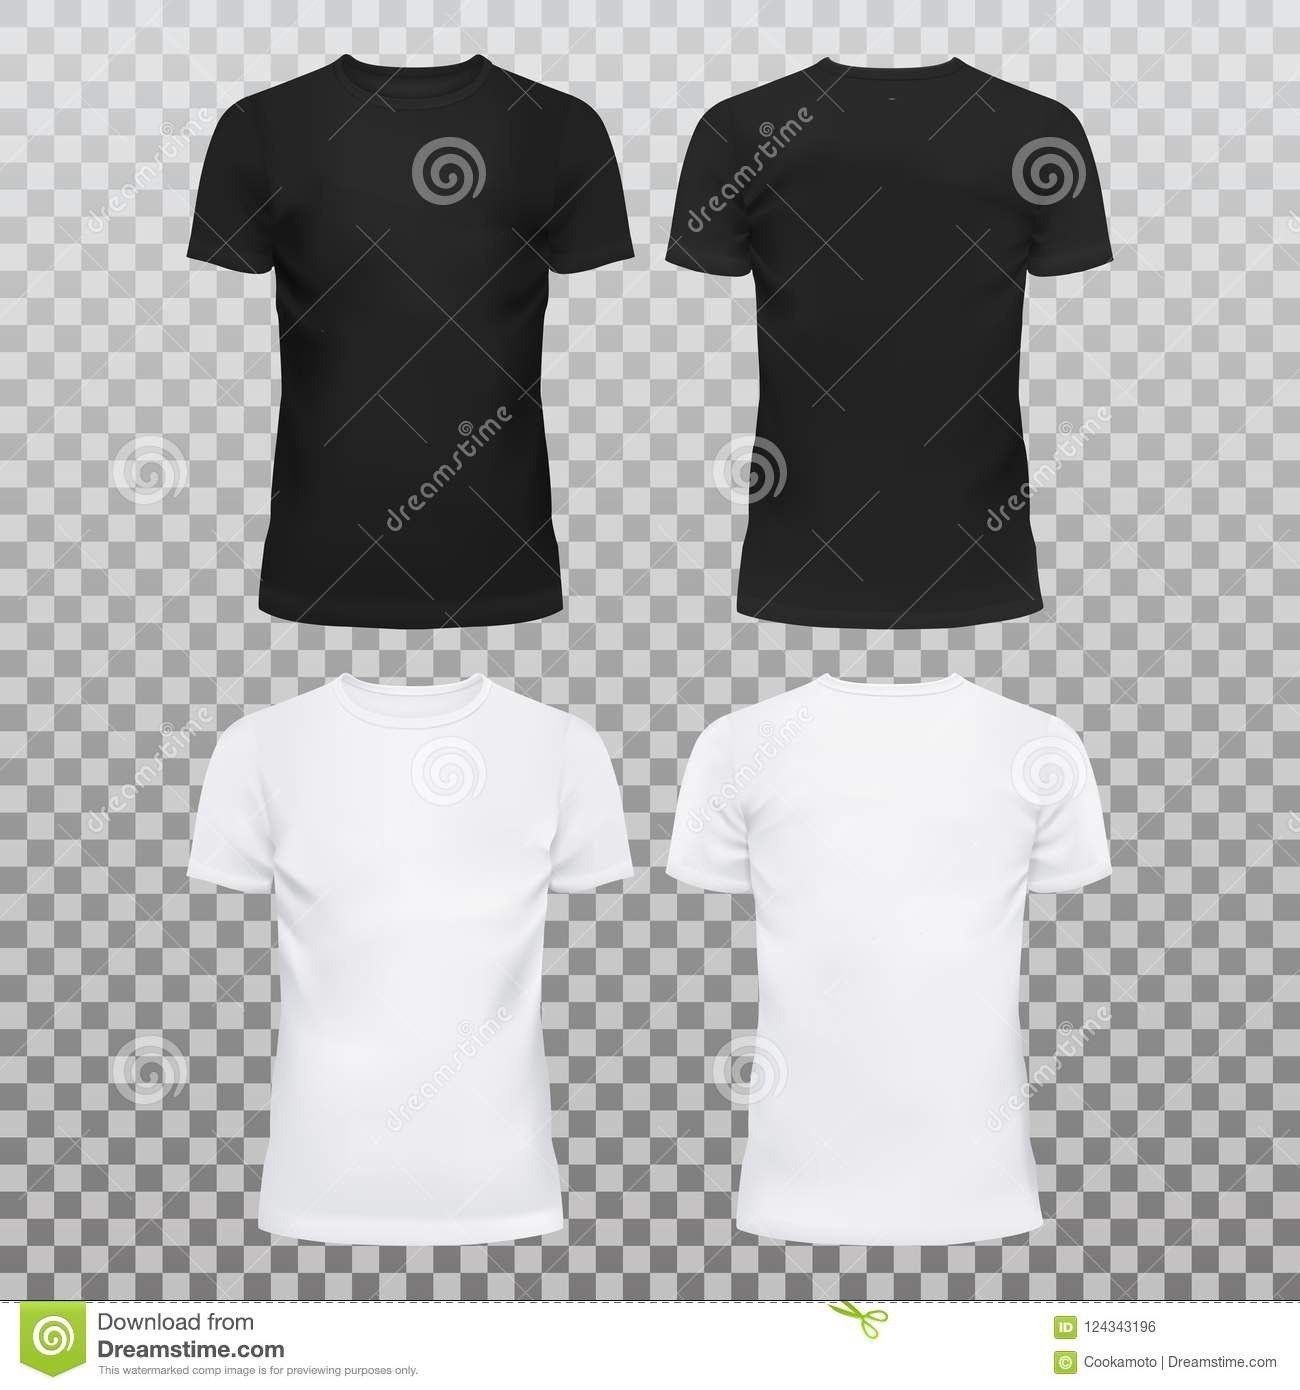 d68940af83f1 Amazing mockup blank t-shirts for men and women. Summer clothing with  u-neck at front. Dress for man and woman, male and female, boy and girl.